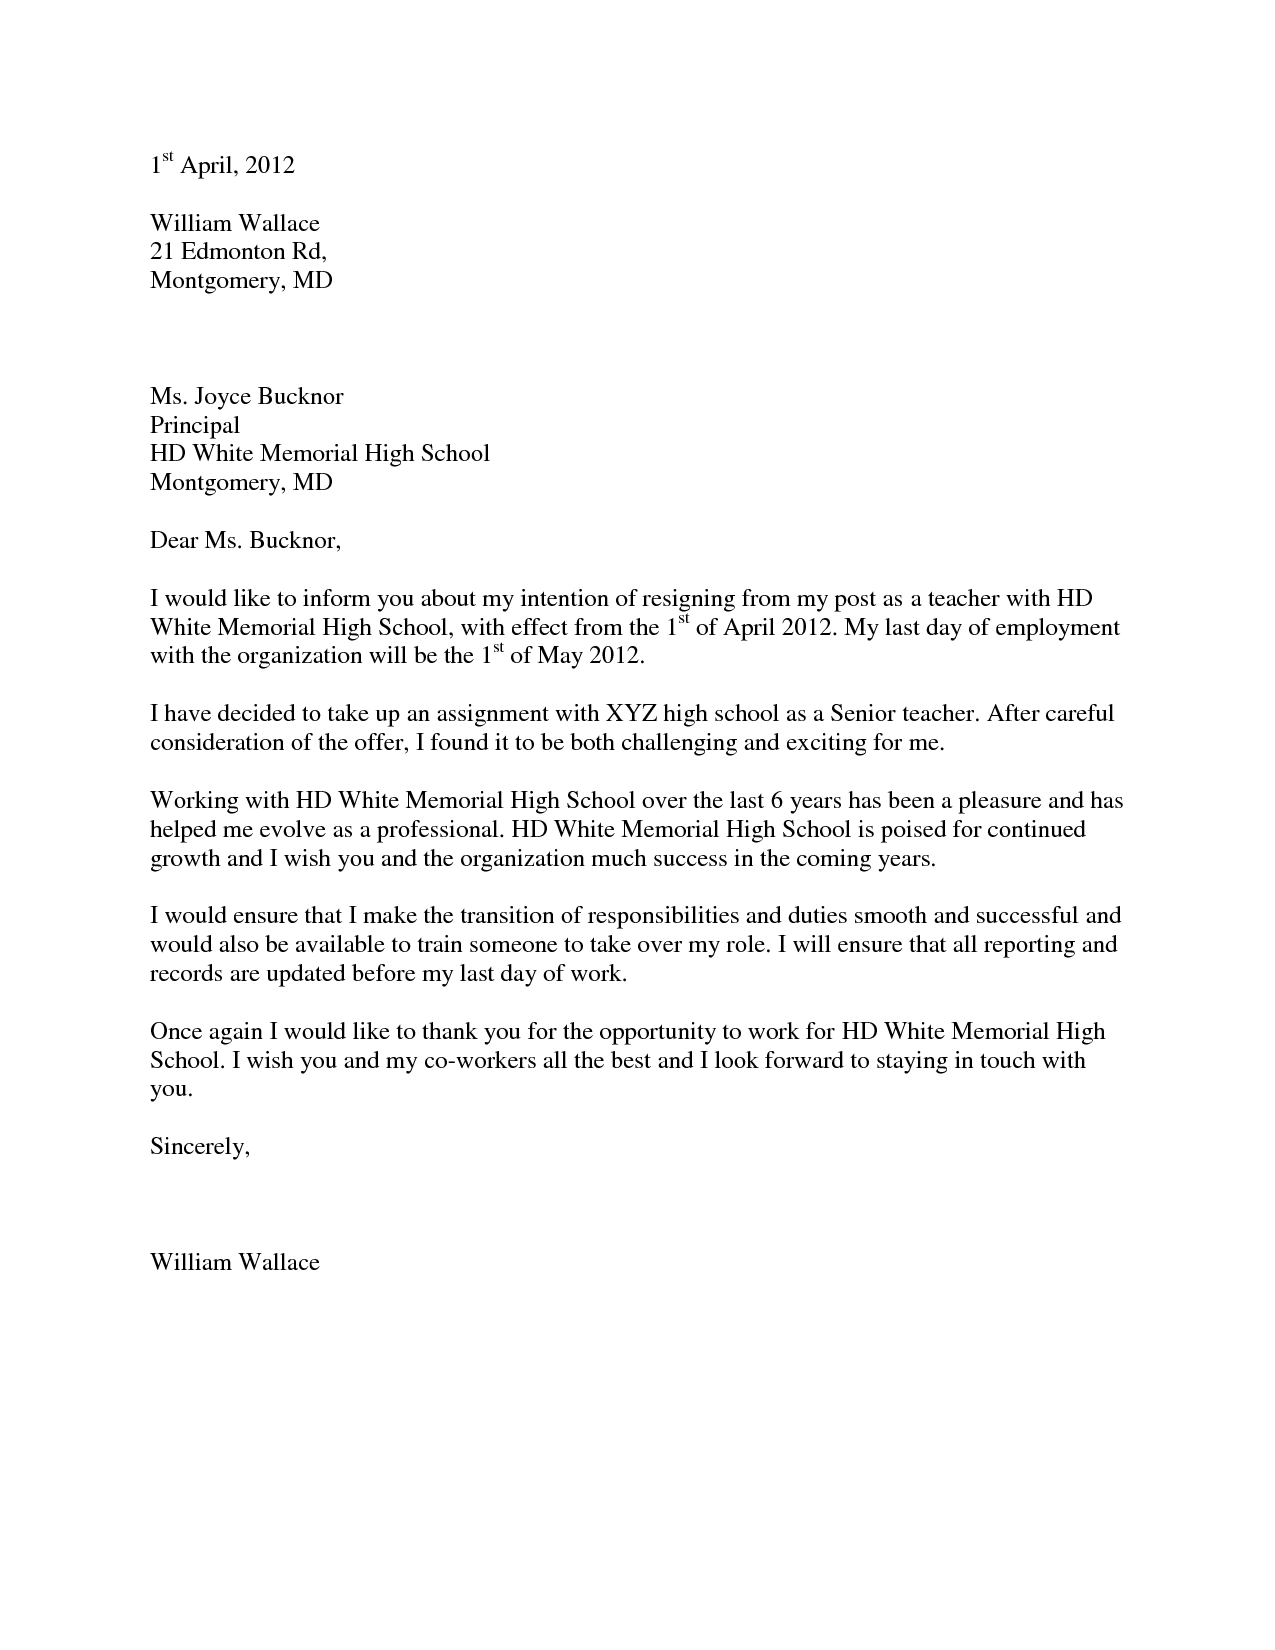 Letter recommendation for elementary music teacher cover letter recommendation for elementary music teacher cover application sample best mitanshu Images